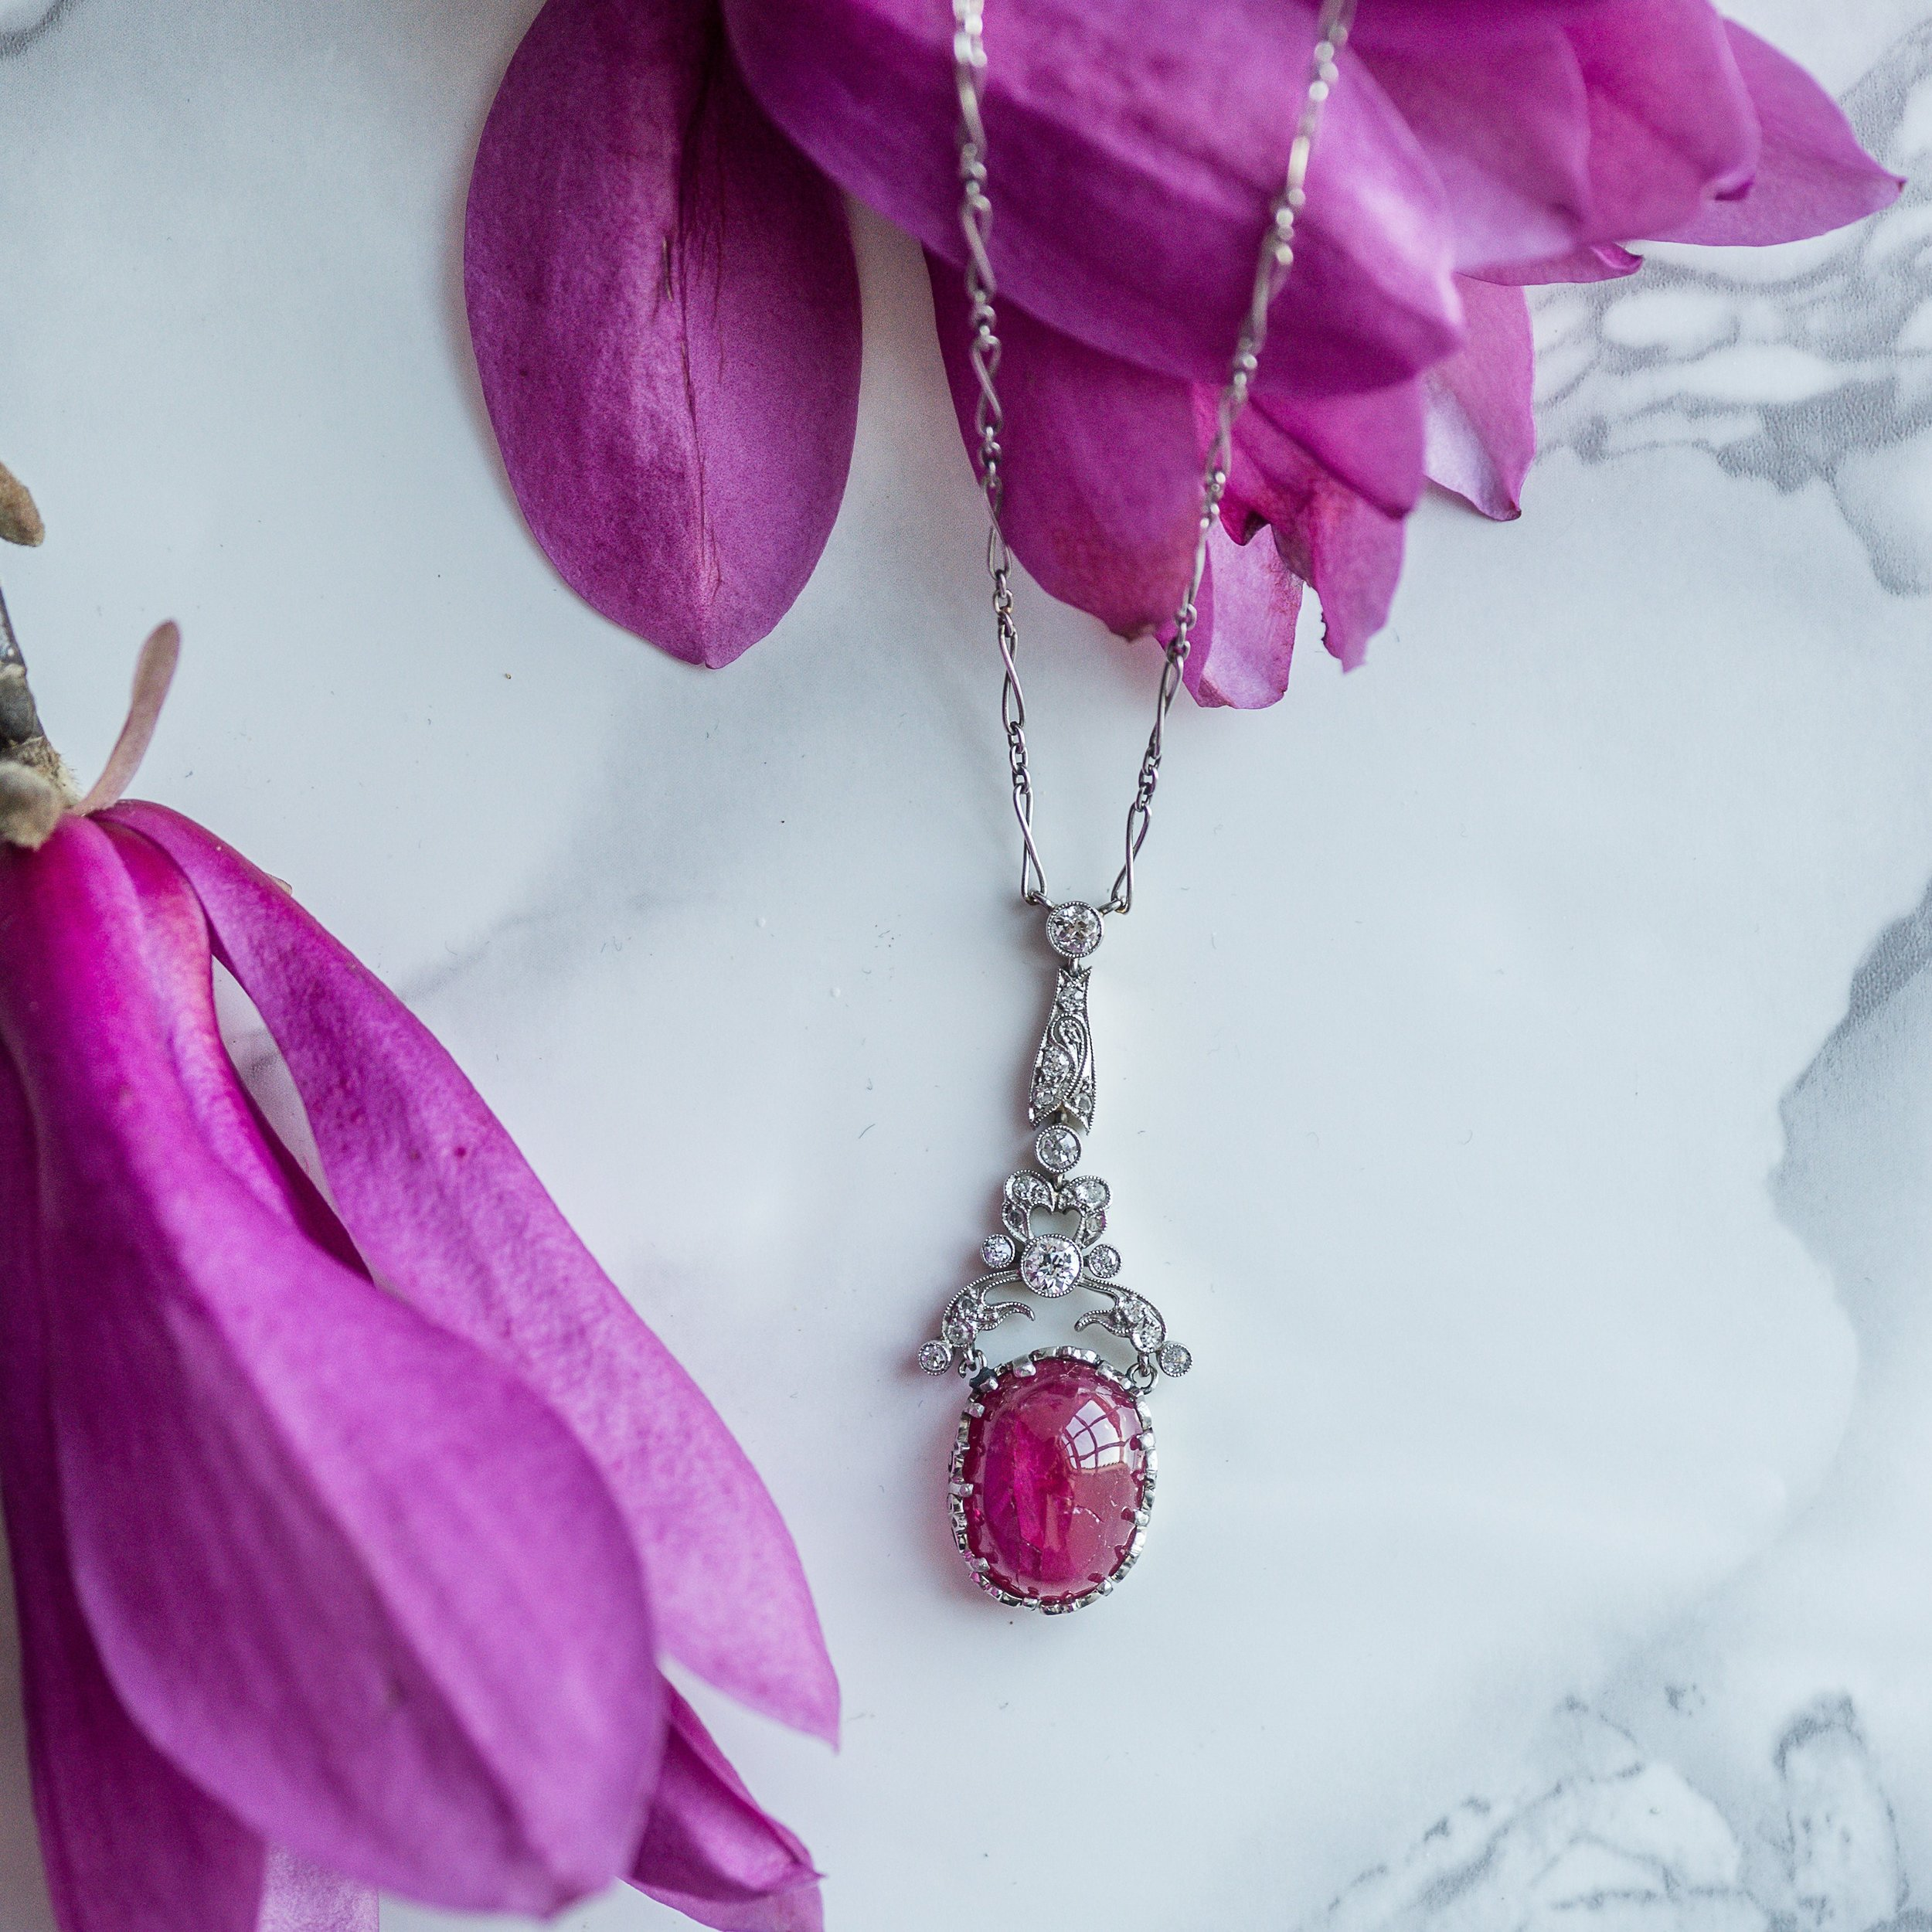 Our favorite thing about spring? All the beautiful blooms and colors that remind us of gemstones! Like this fabulous, circa 1920's, ruby cabochon and diamond necklace all set in platinum 💎 Shop this gorgeous piece  HERE .